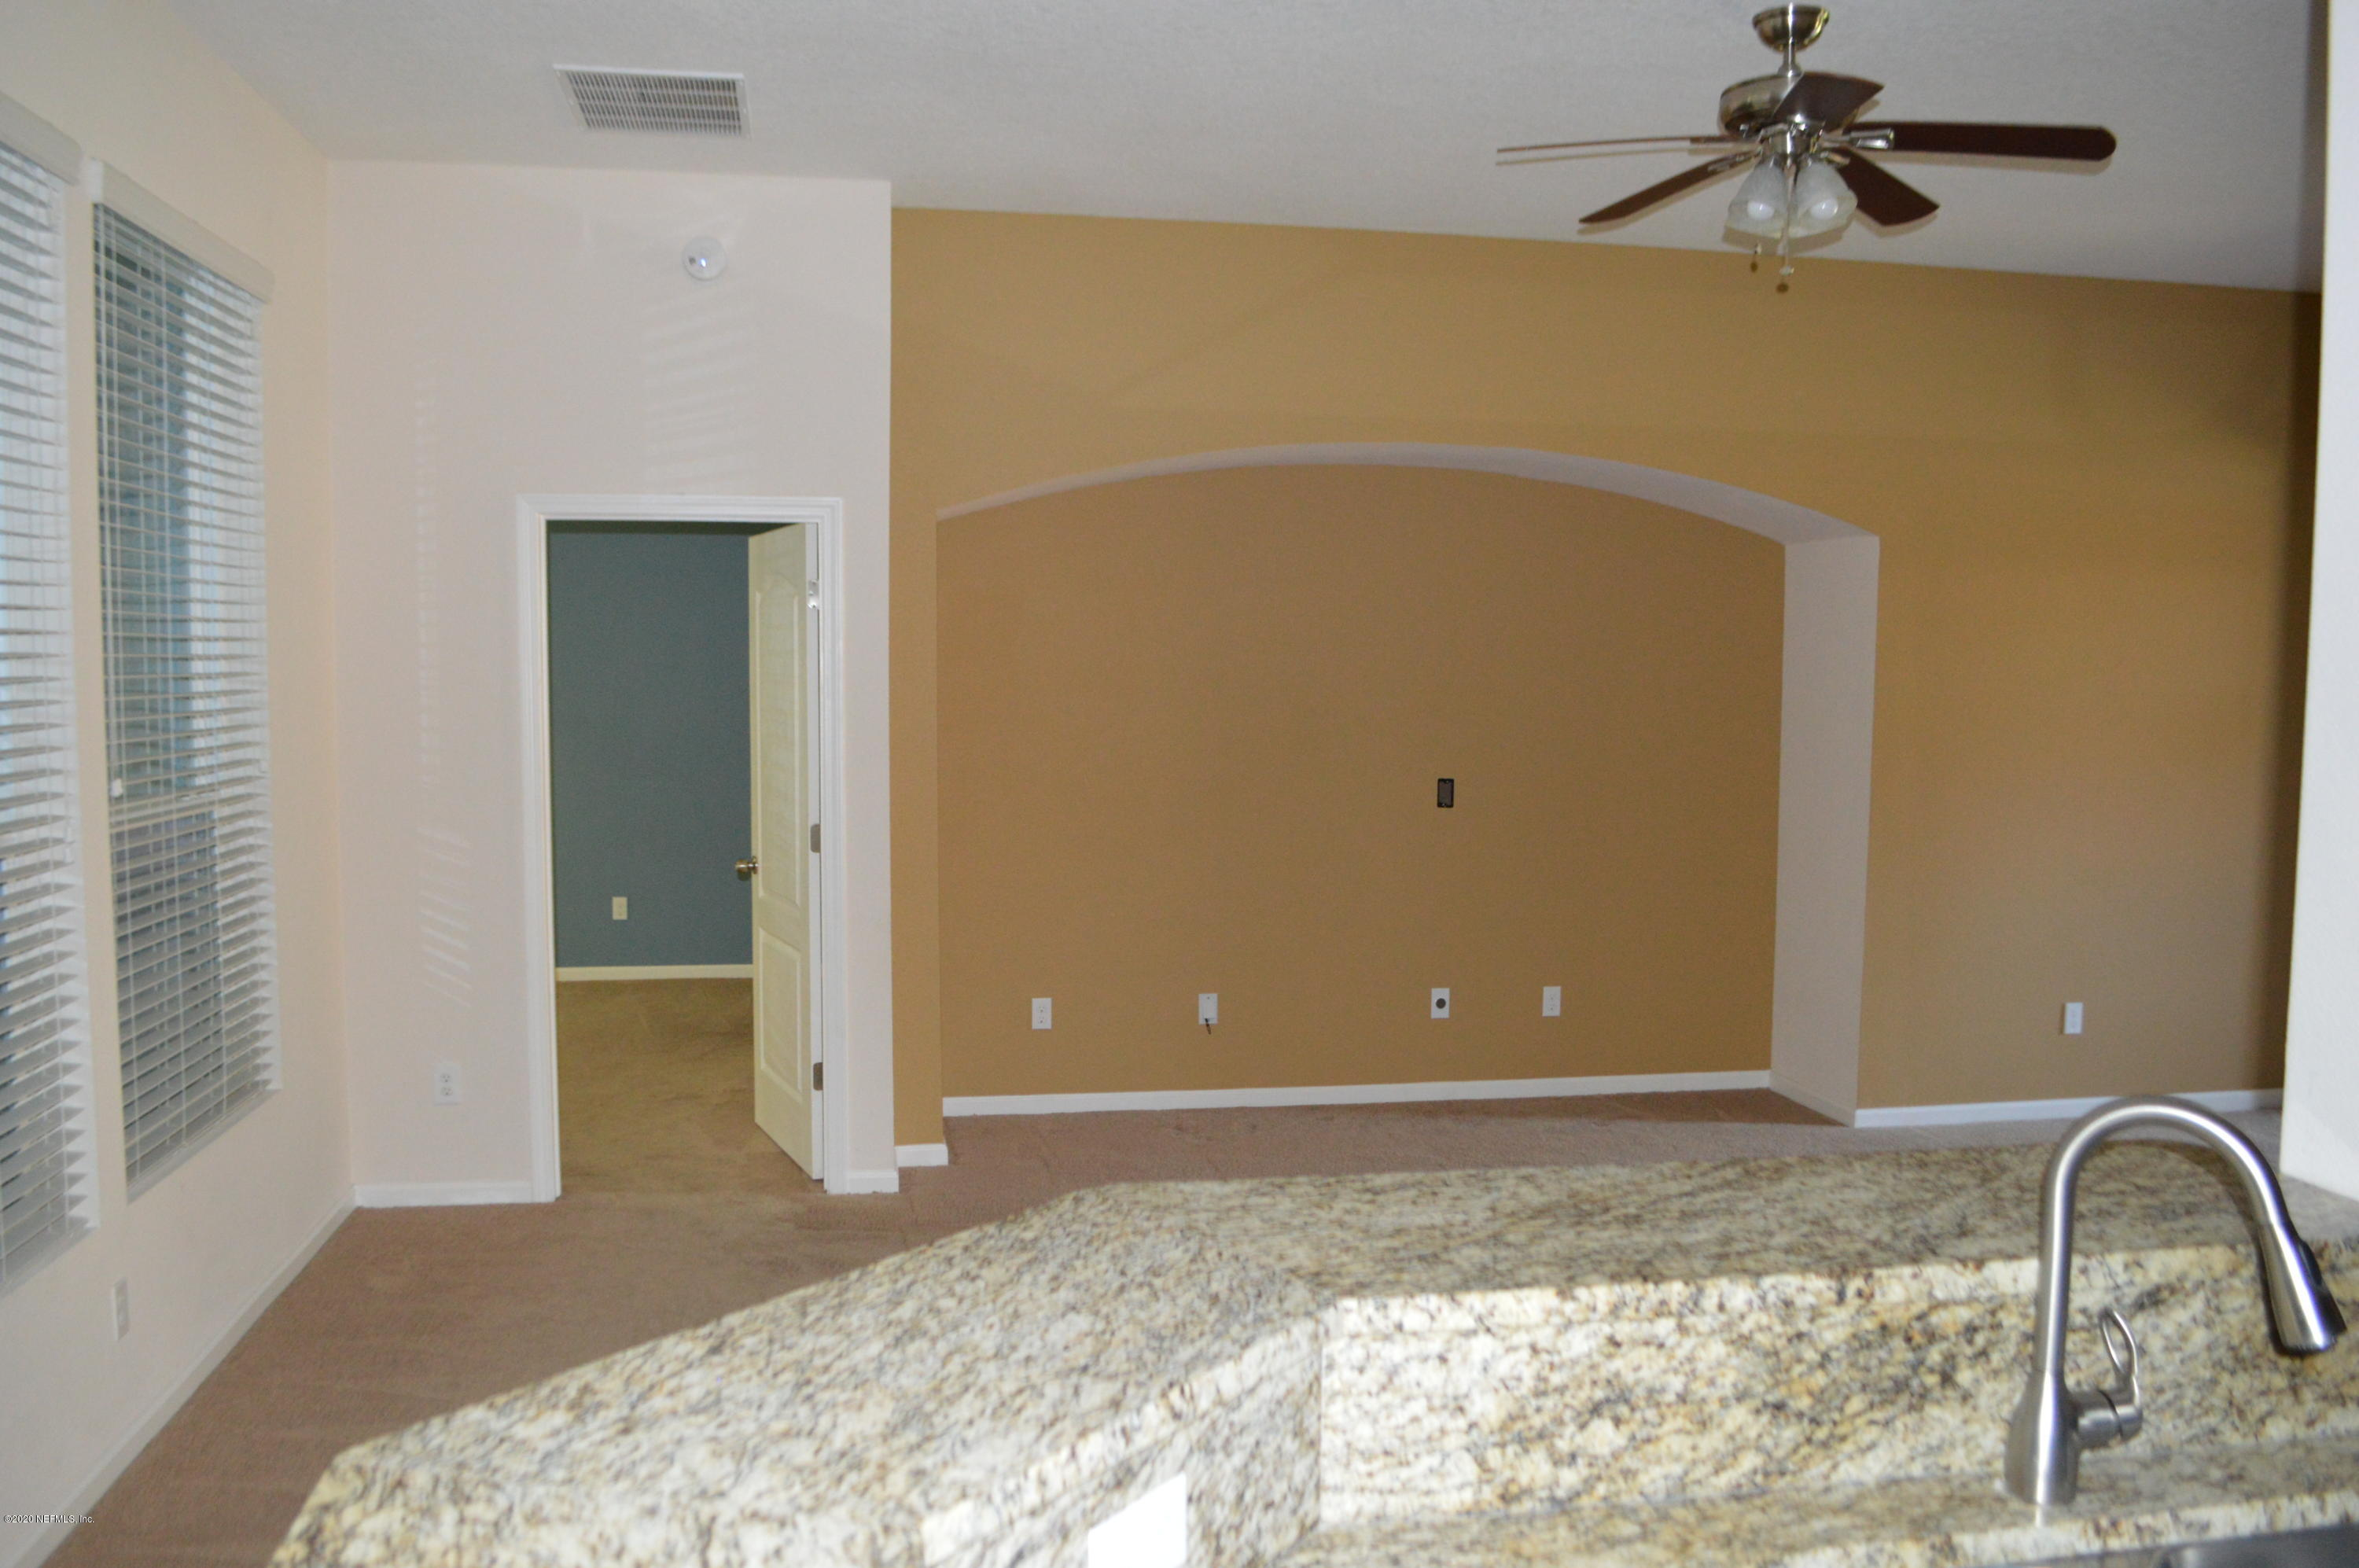 312 ADELAIDE, FRUIT COVE, FLORIDA 32259, 4 Bedrooms Bedrooms, ,2 BathroomsBathrooms,Rental,For Rent,ADELAIDE,1083259